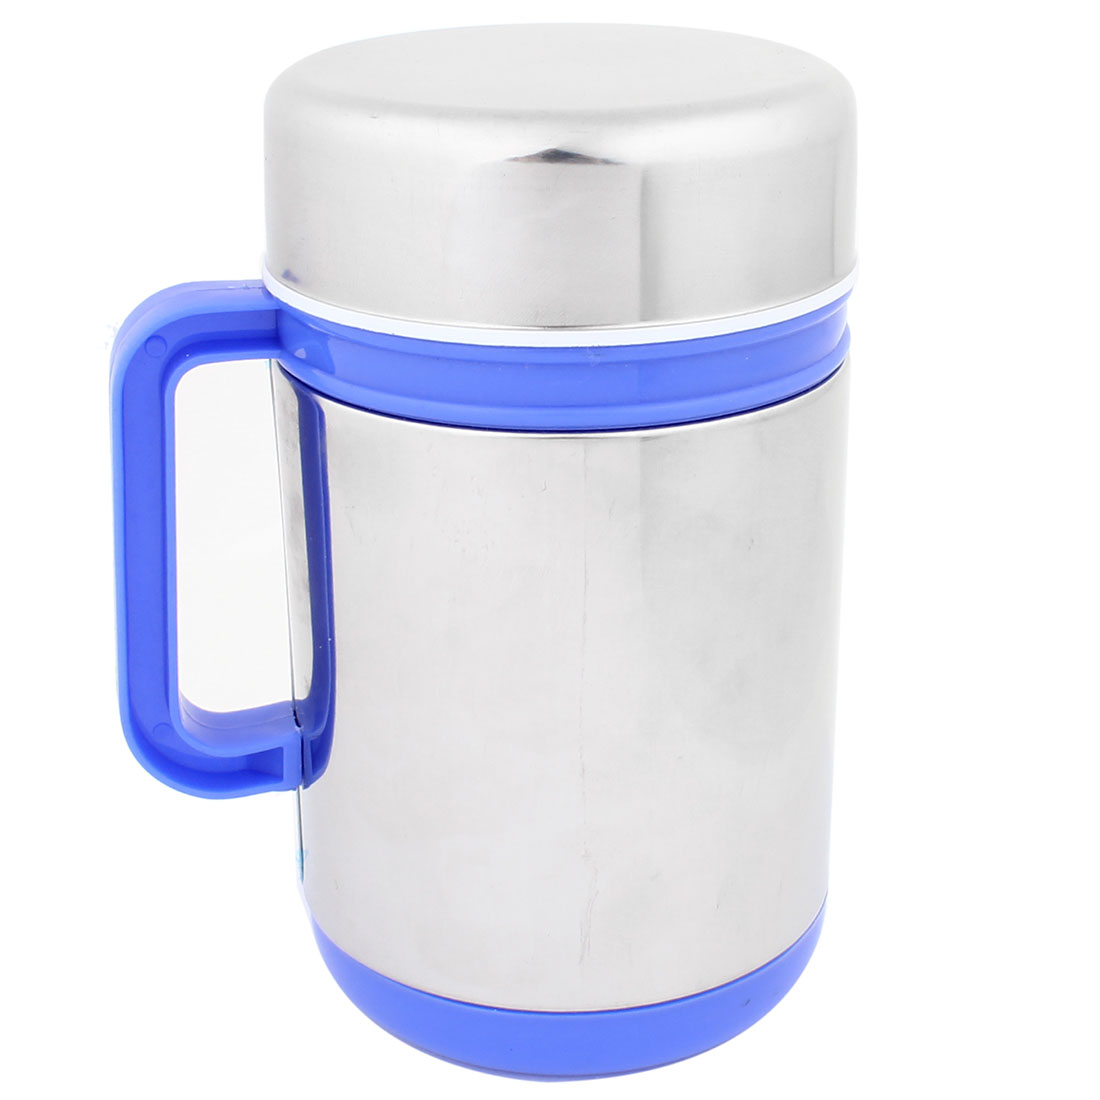 Blue Nonslip Plastic Handle Stainless Steel Shell 300ml Tea Cup Water Mug Silver Tone